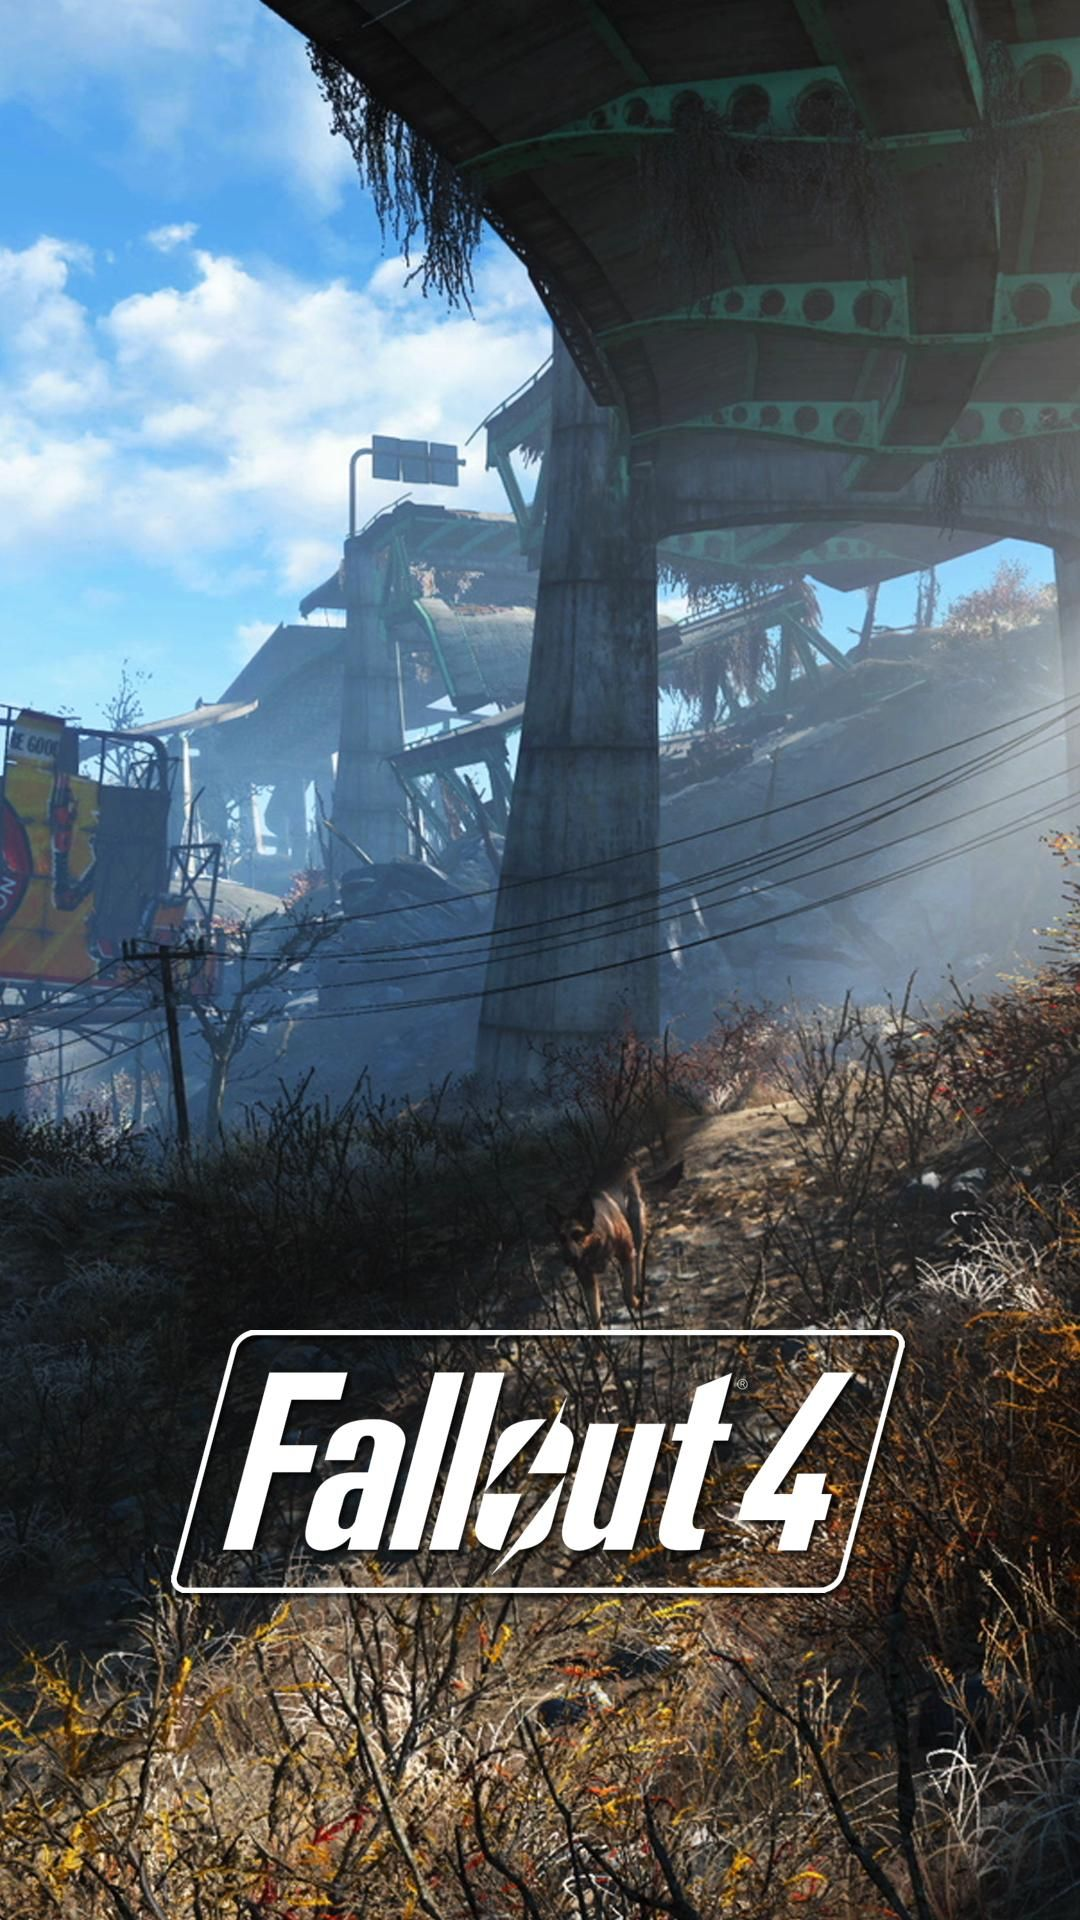 I Made Some Fallout 4 Lock Screen Wallpapers From E3 Stills 1080p Fallout 4 Wallpapers Fallout Wallpaper Fallout Posters